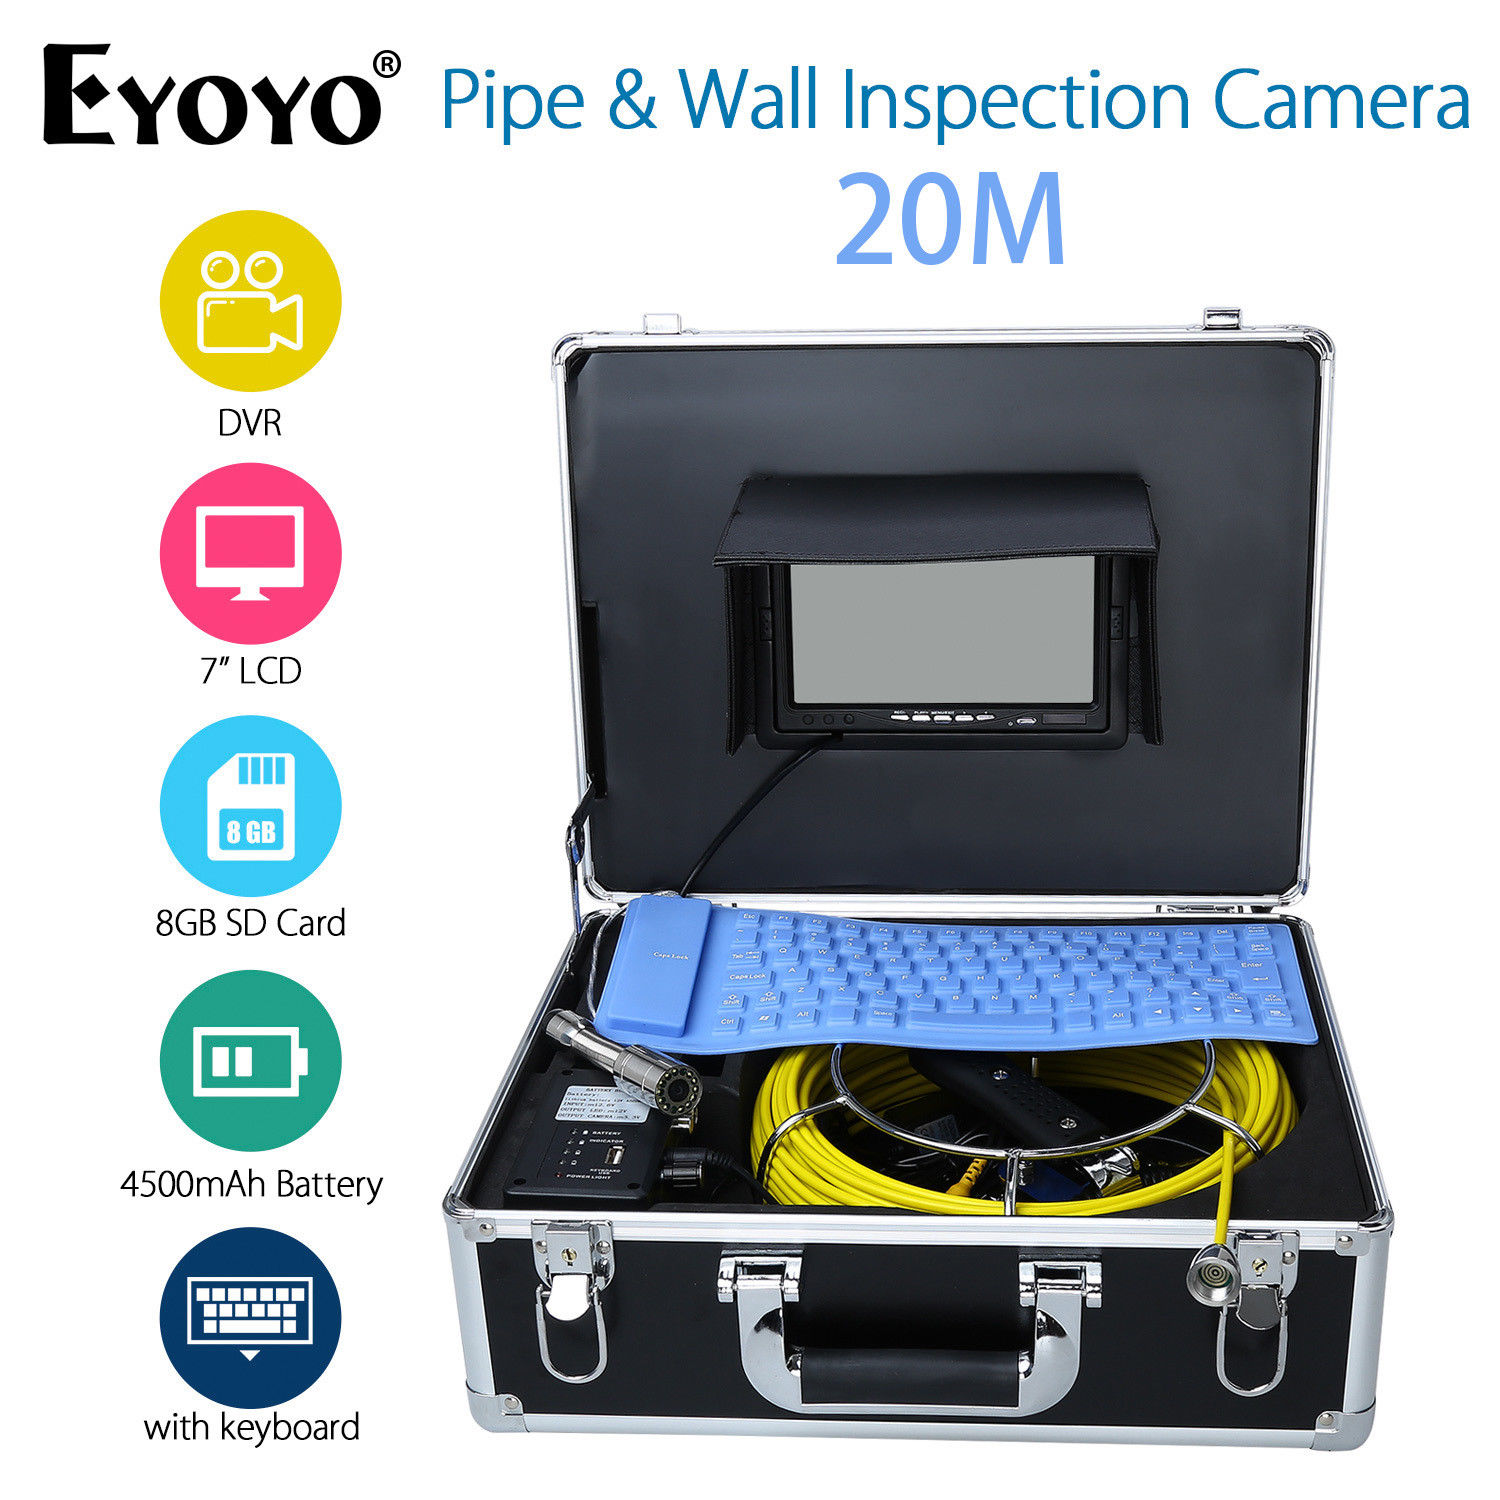 EYOYO 7 LCD Screen 20M 800*480 1000TVL 4500mAh Sewer Drain Camera Pipe Wall Inspection Endoscope w/Keyboard DVR Recording 8GB бензиновая виброплита калибр бвп 20 4500